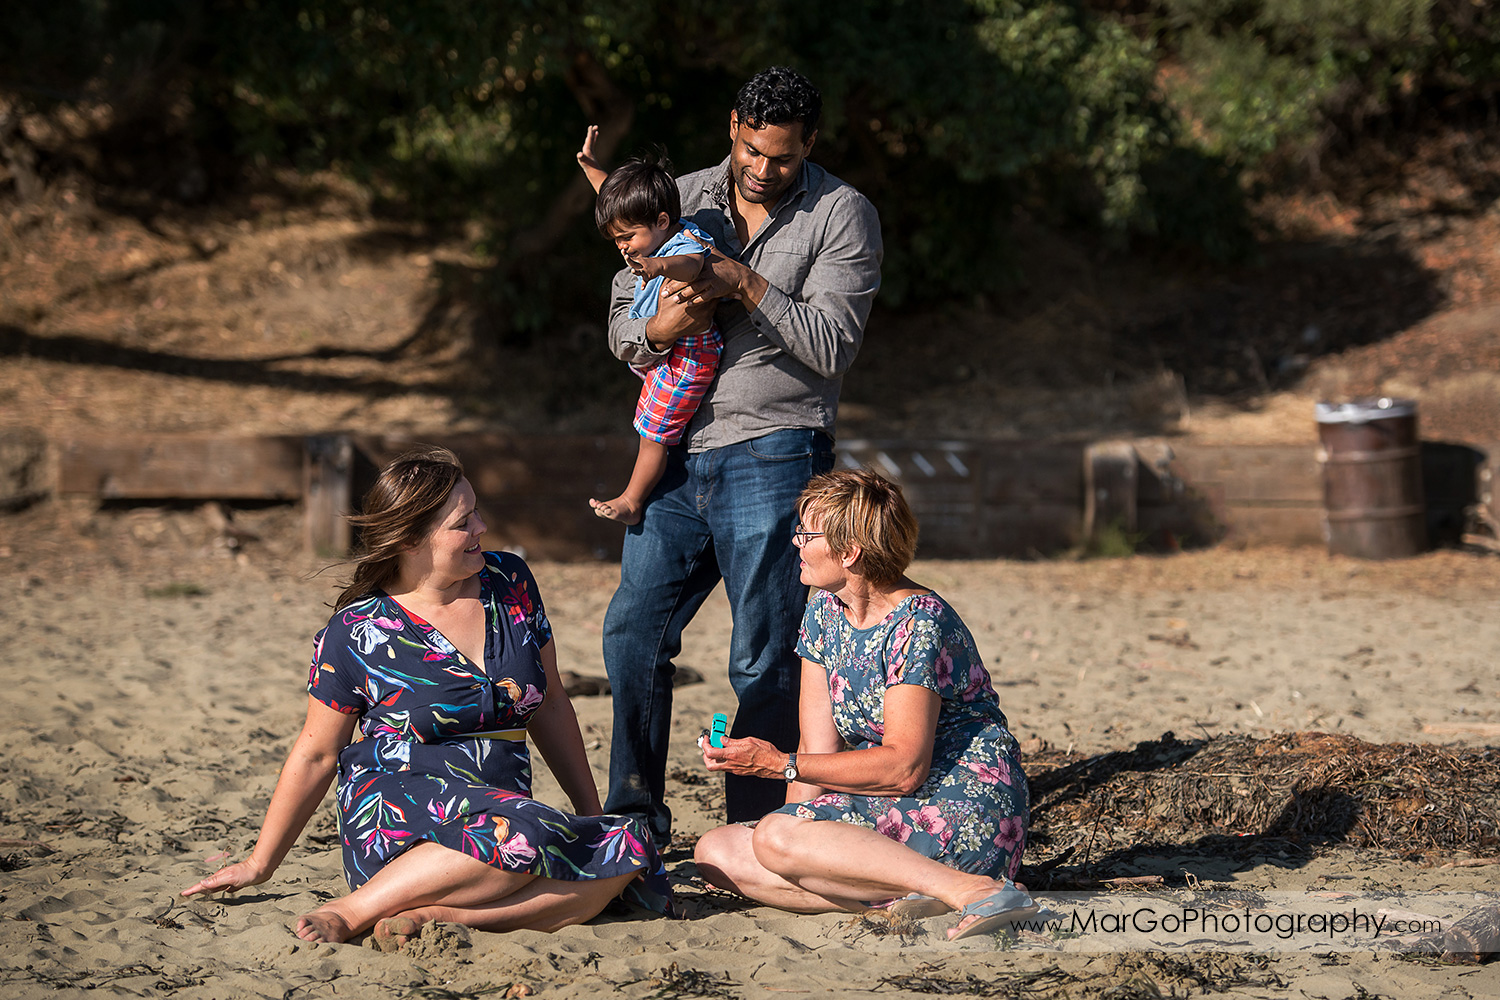 man in grey shirt holding little boy in blue shirt and red shorts standing behind two women in blue dresses with pink flowers sitting on the sand and at Richmond Keller Beach